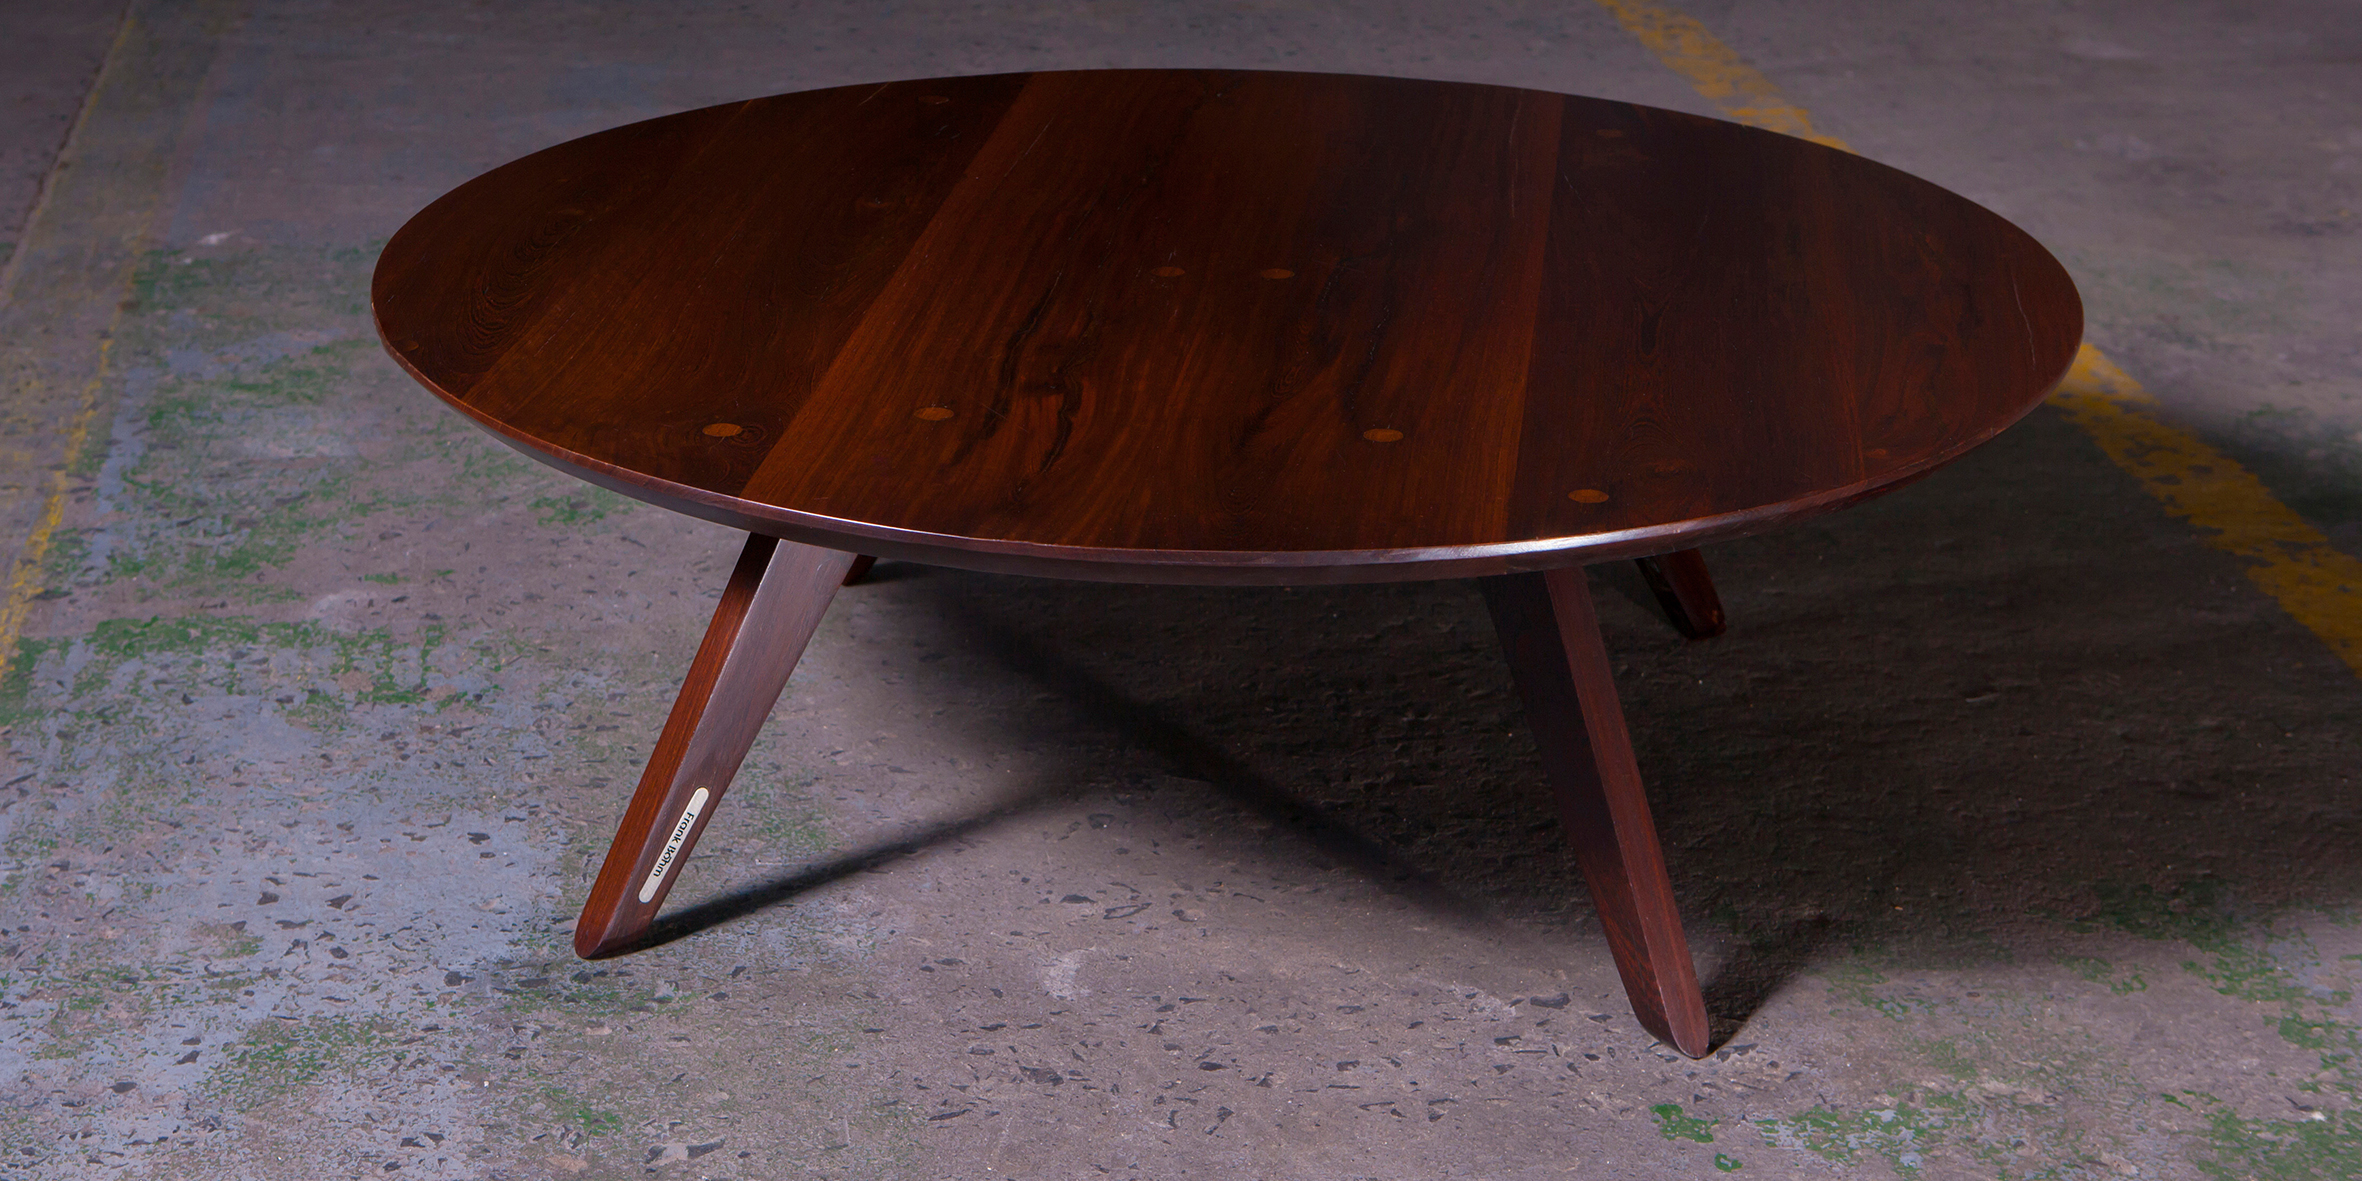 fbs - rylt coffee table, 1200 dia x 380 h, reclaimed wenge REV1